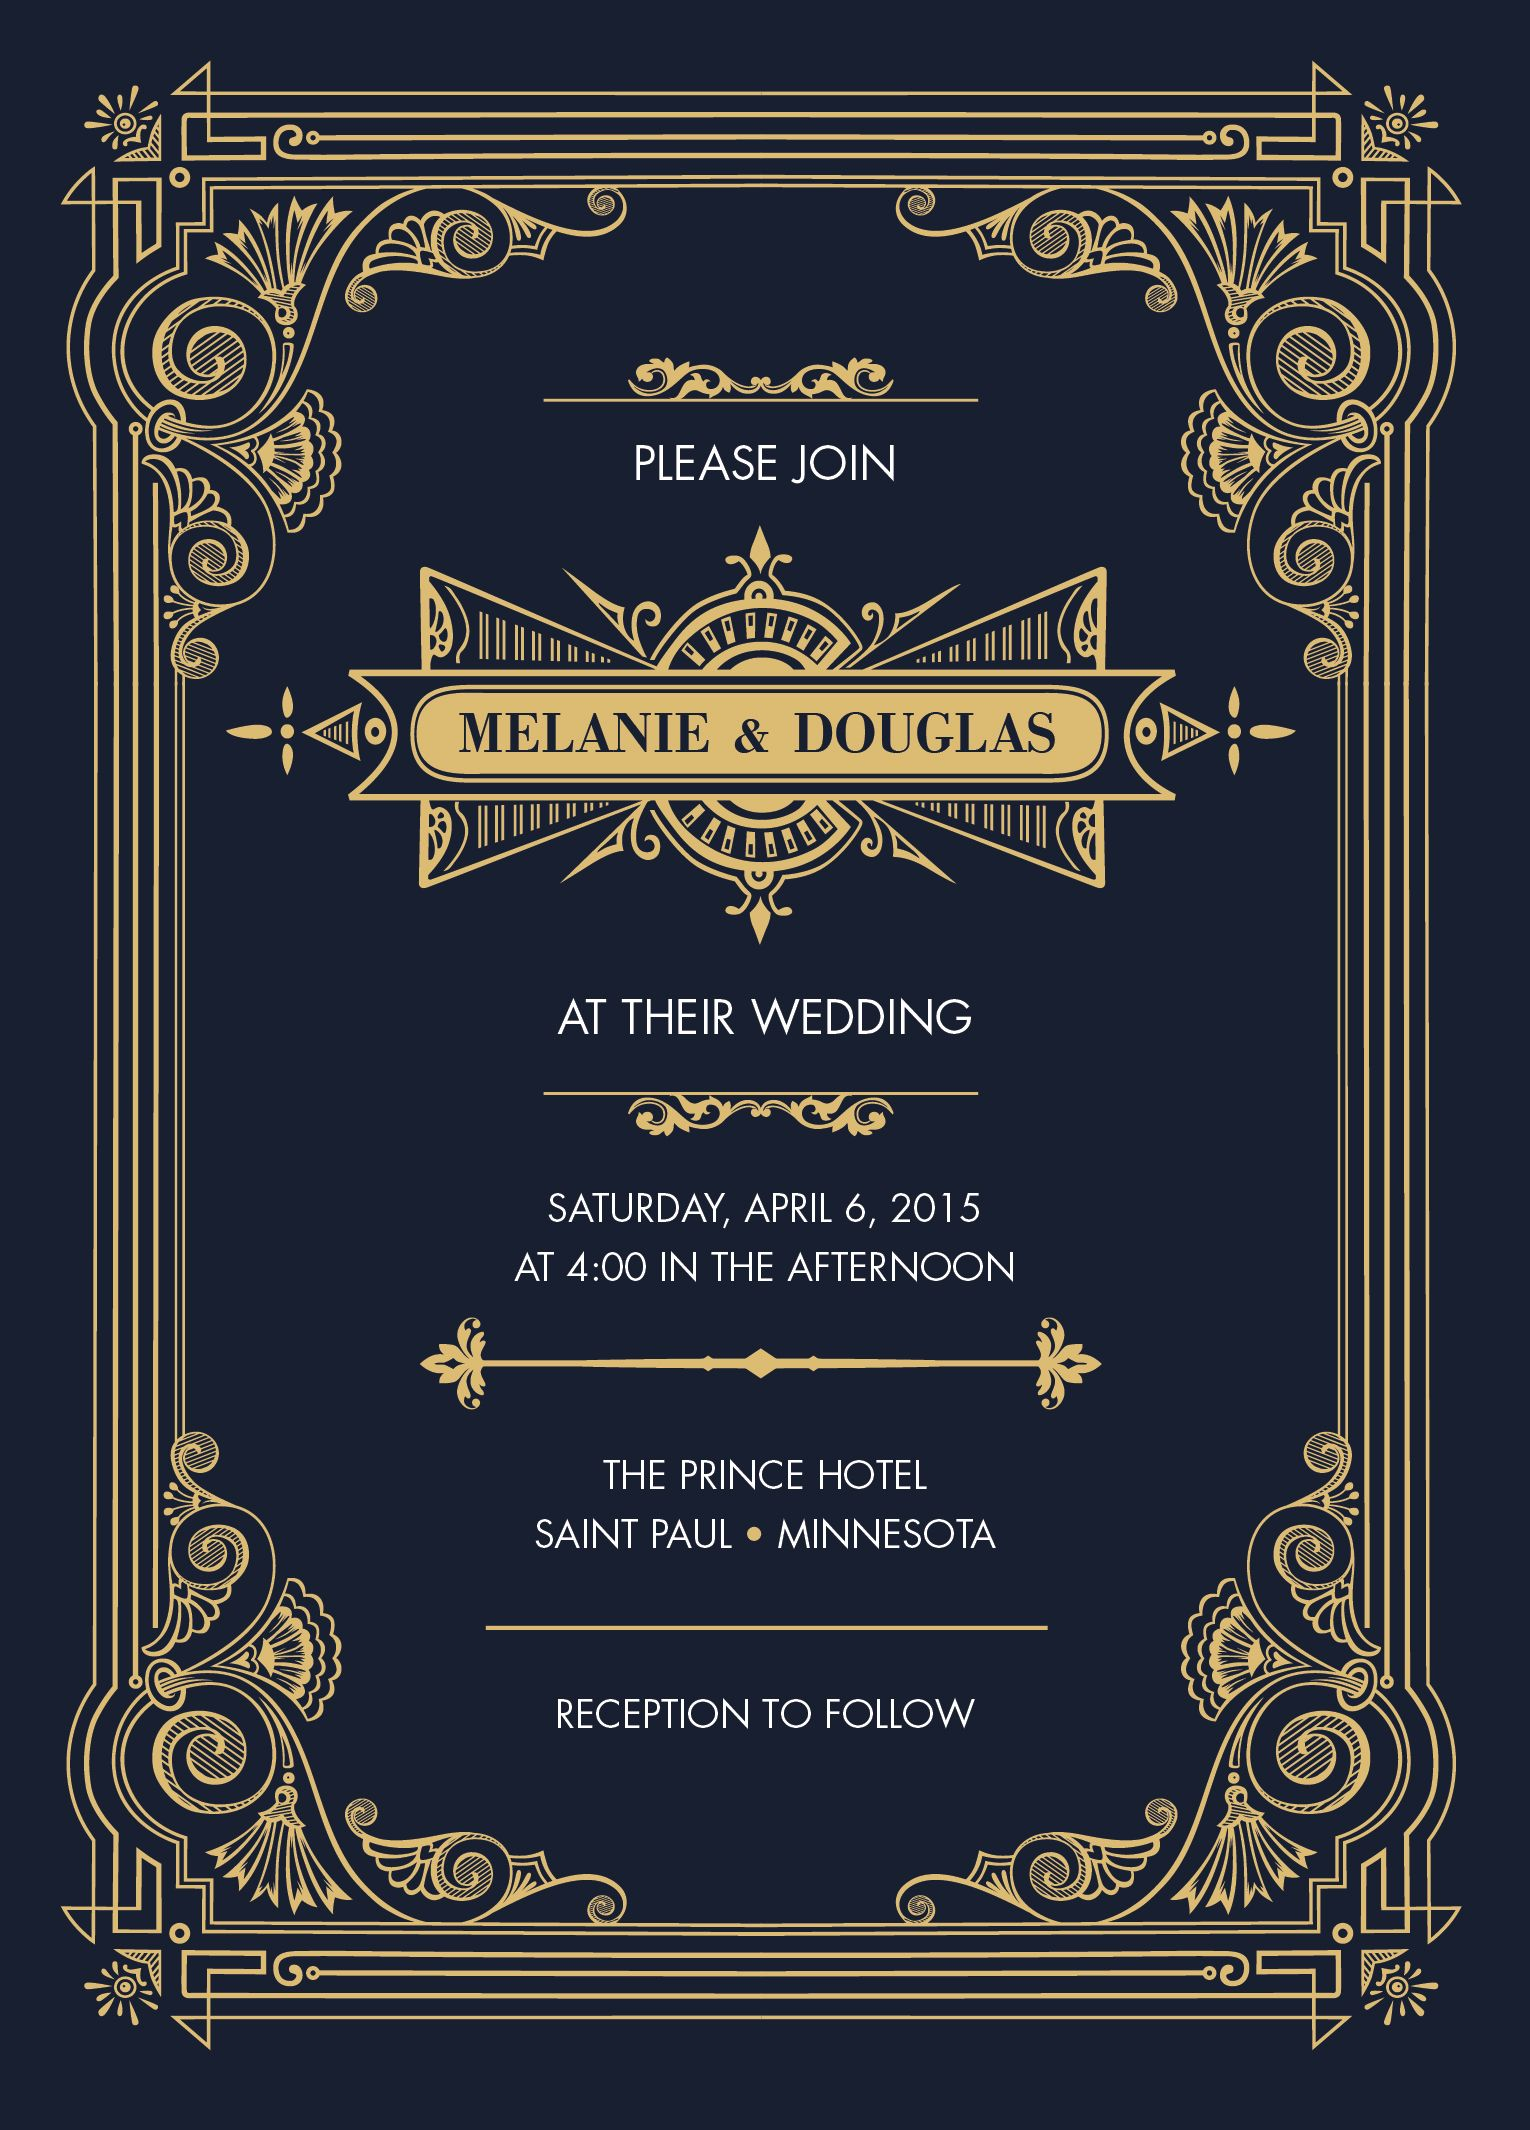 Invitation Card For Weddings Or Events Gold And Navy Or